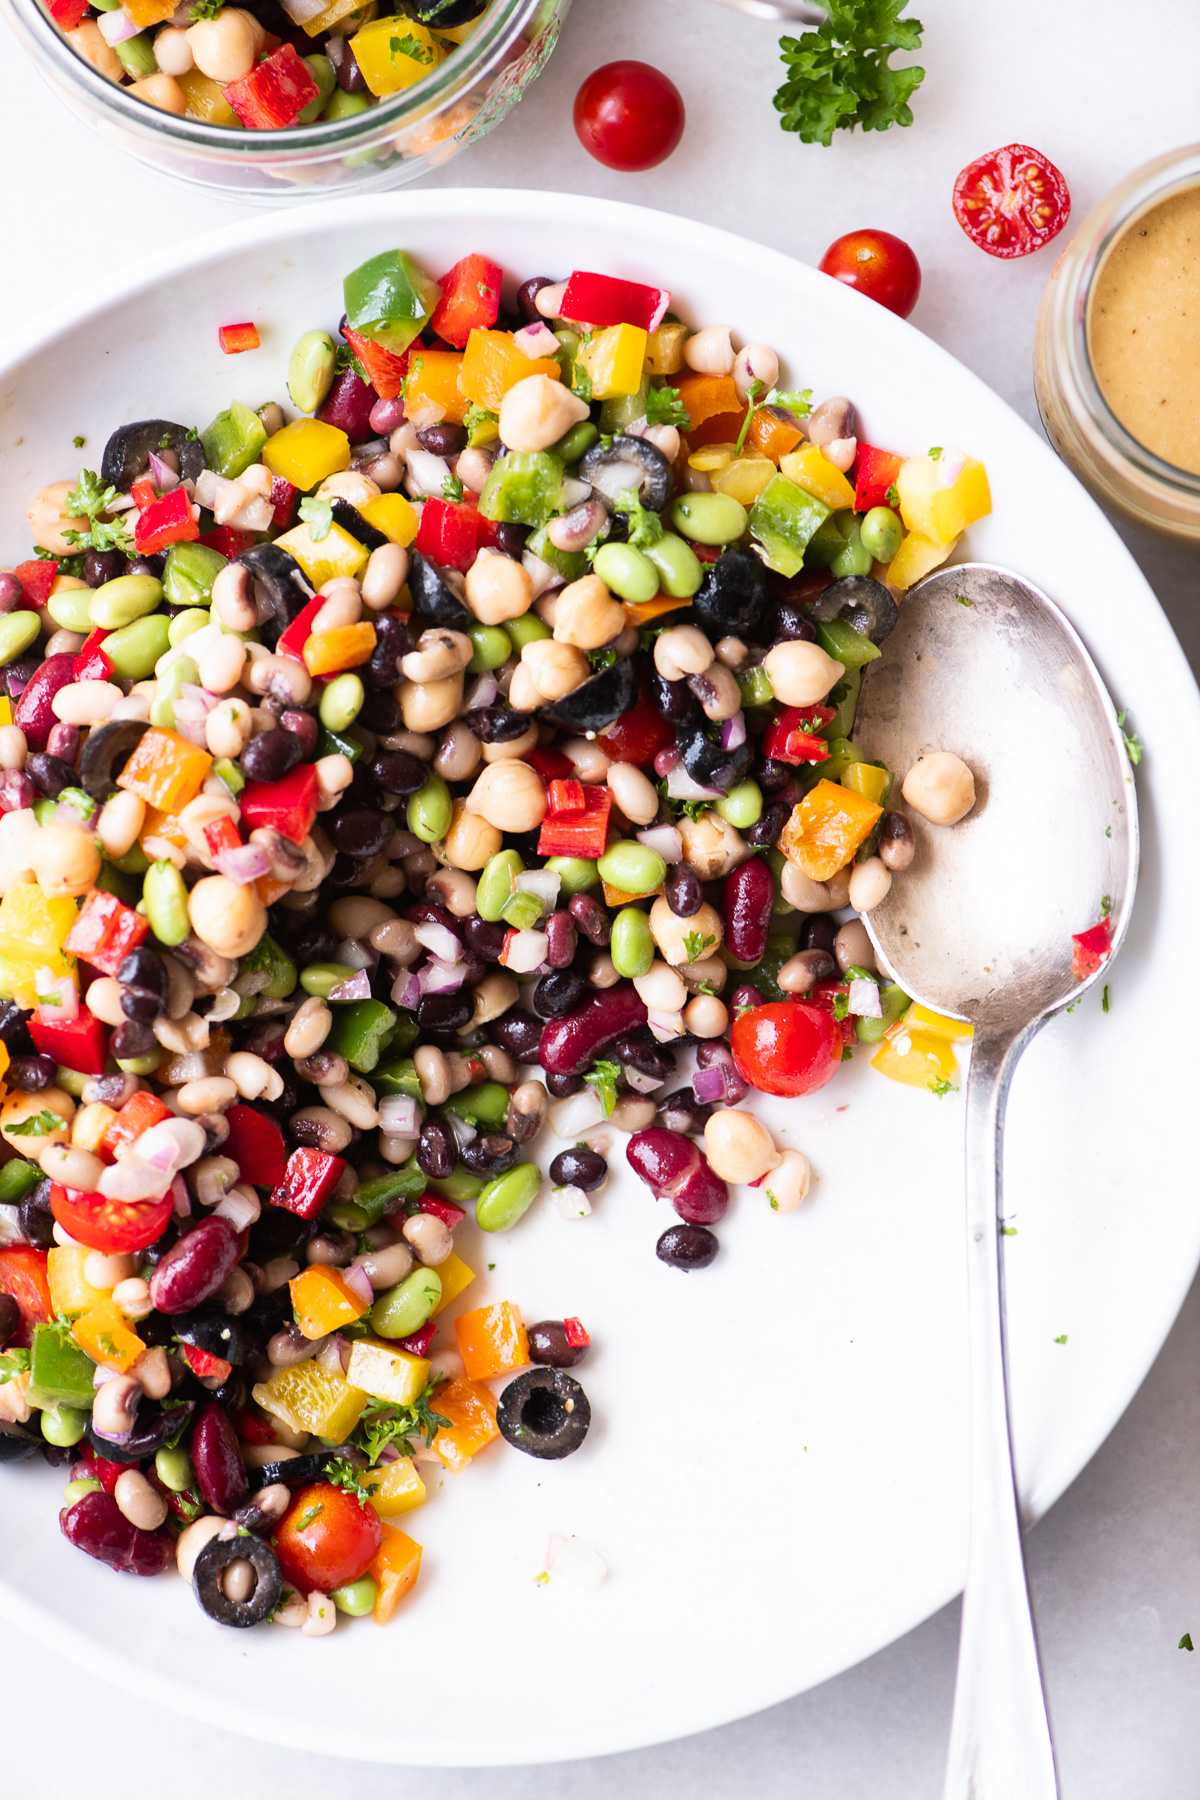 10 Heart Healthy Recipes To Help Lower Cholesterol The View From Great Island